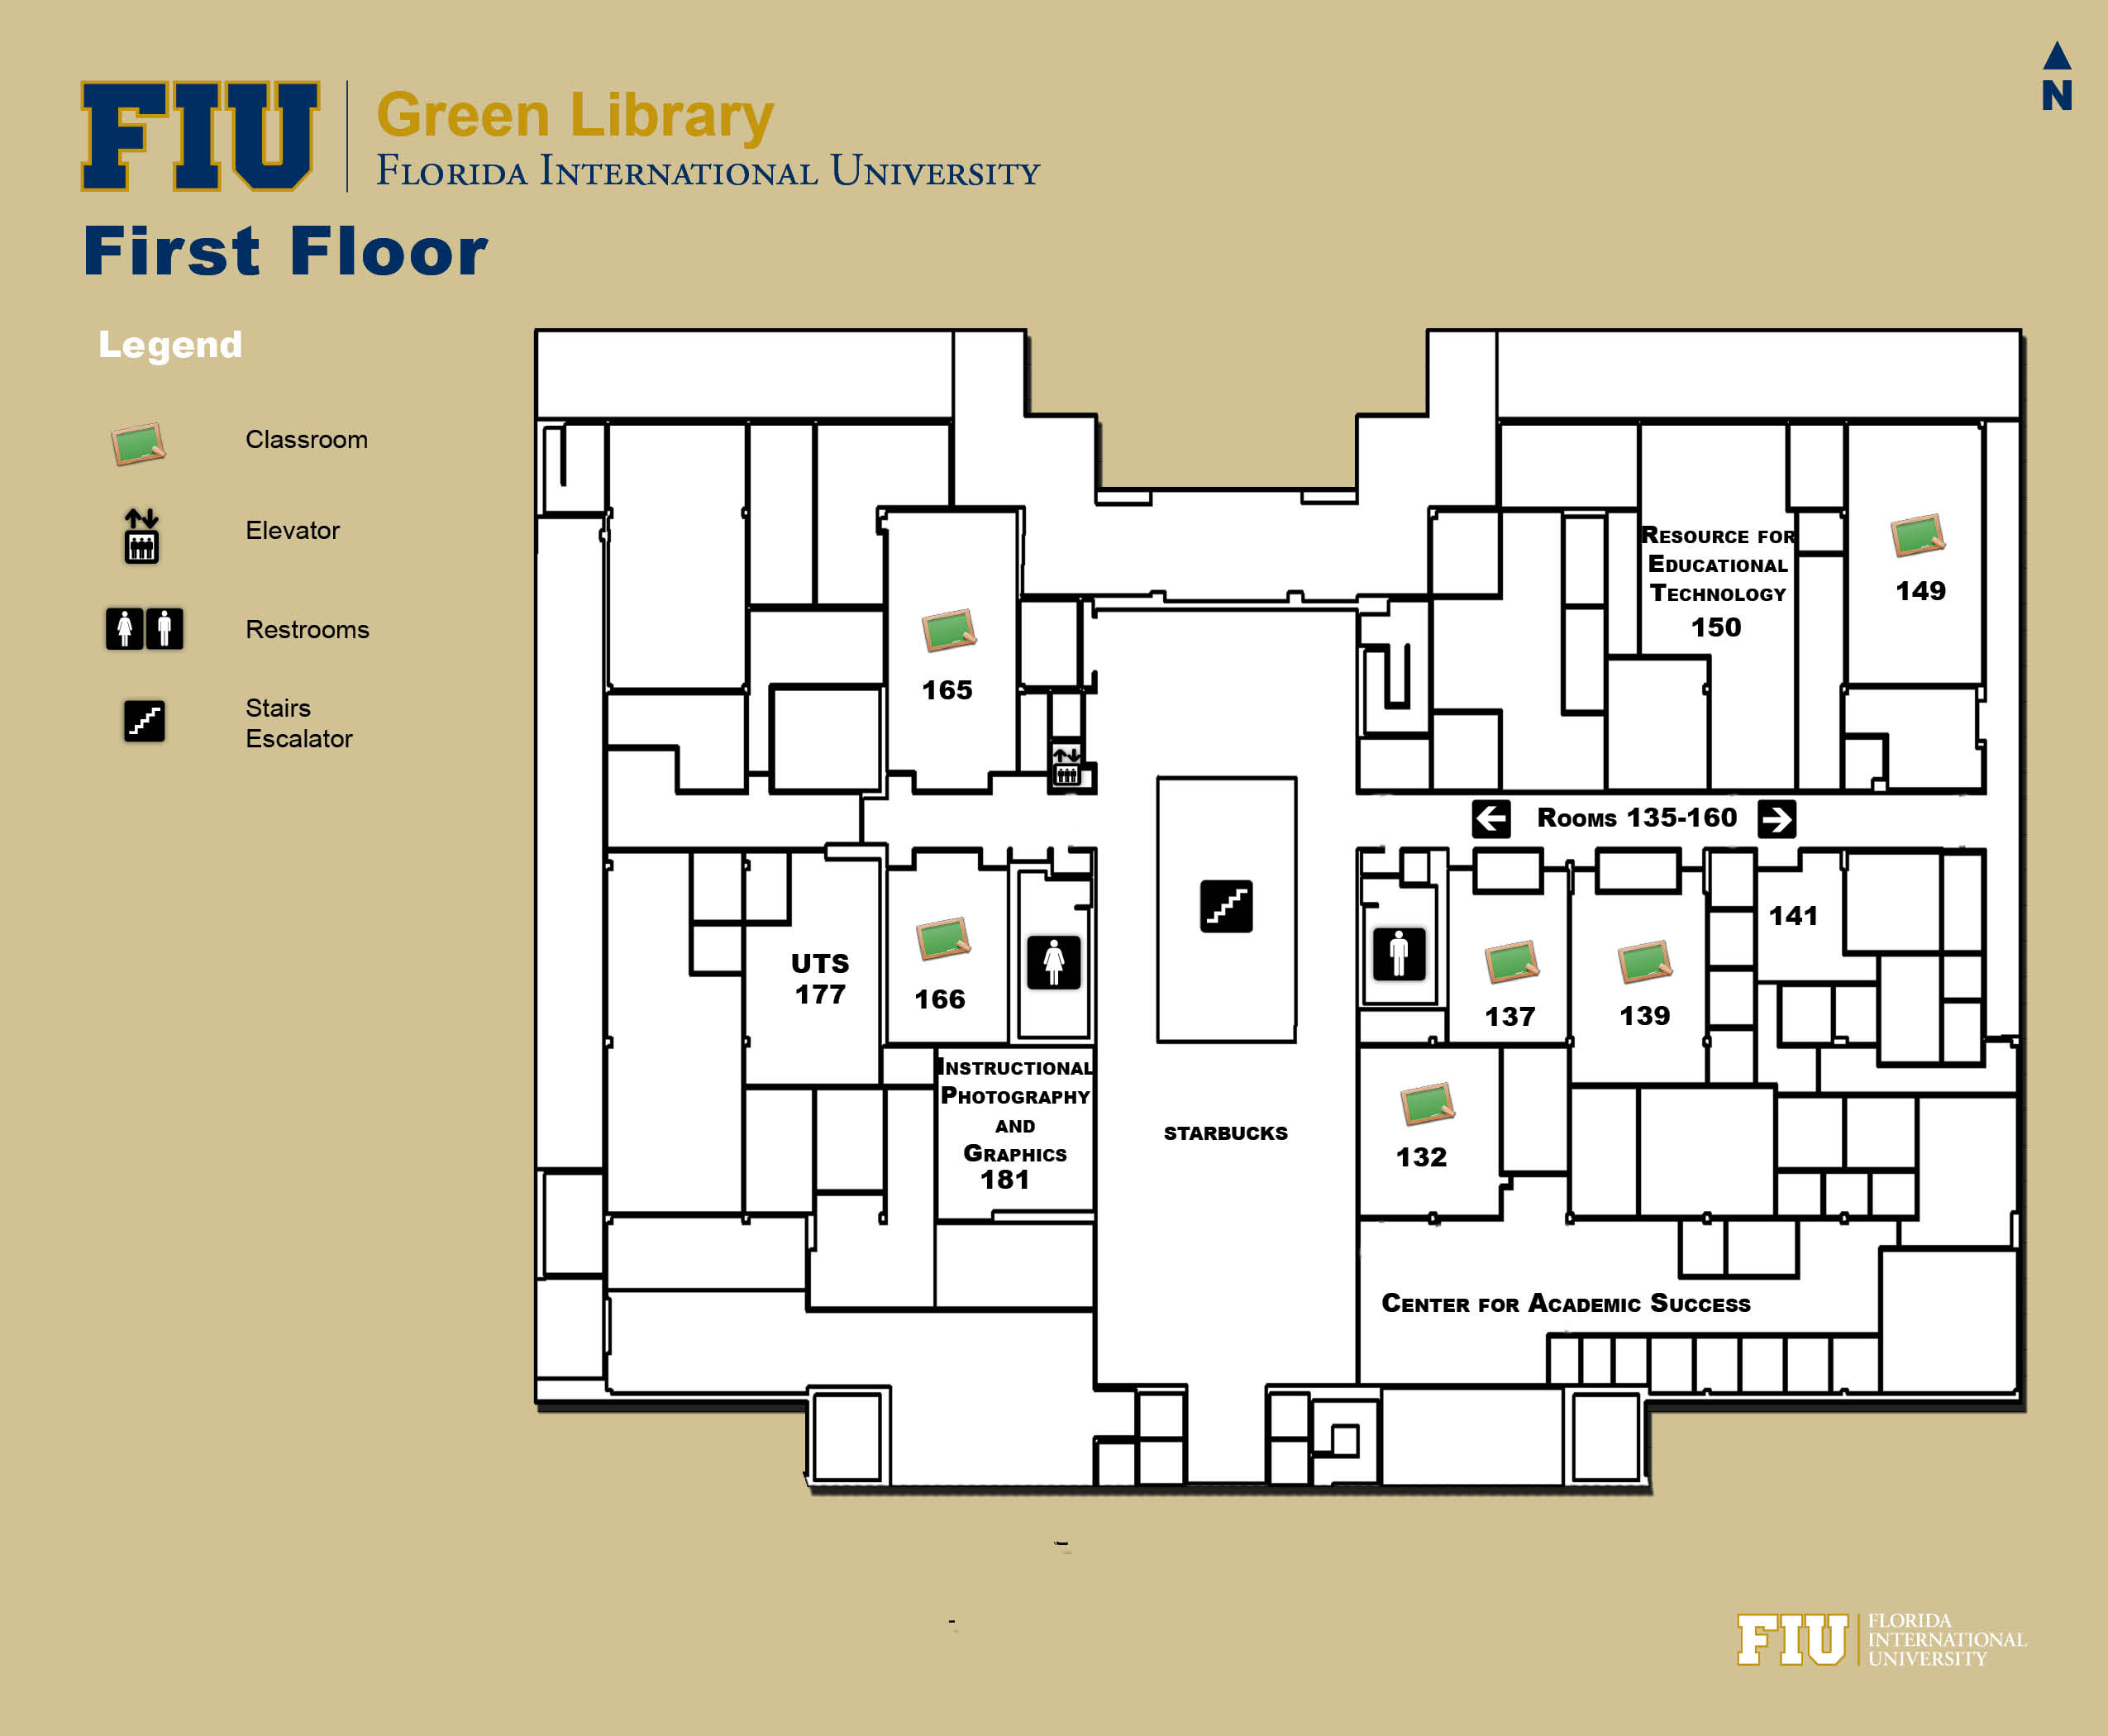 Floorplan for Floor 1 of Green Library